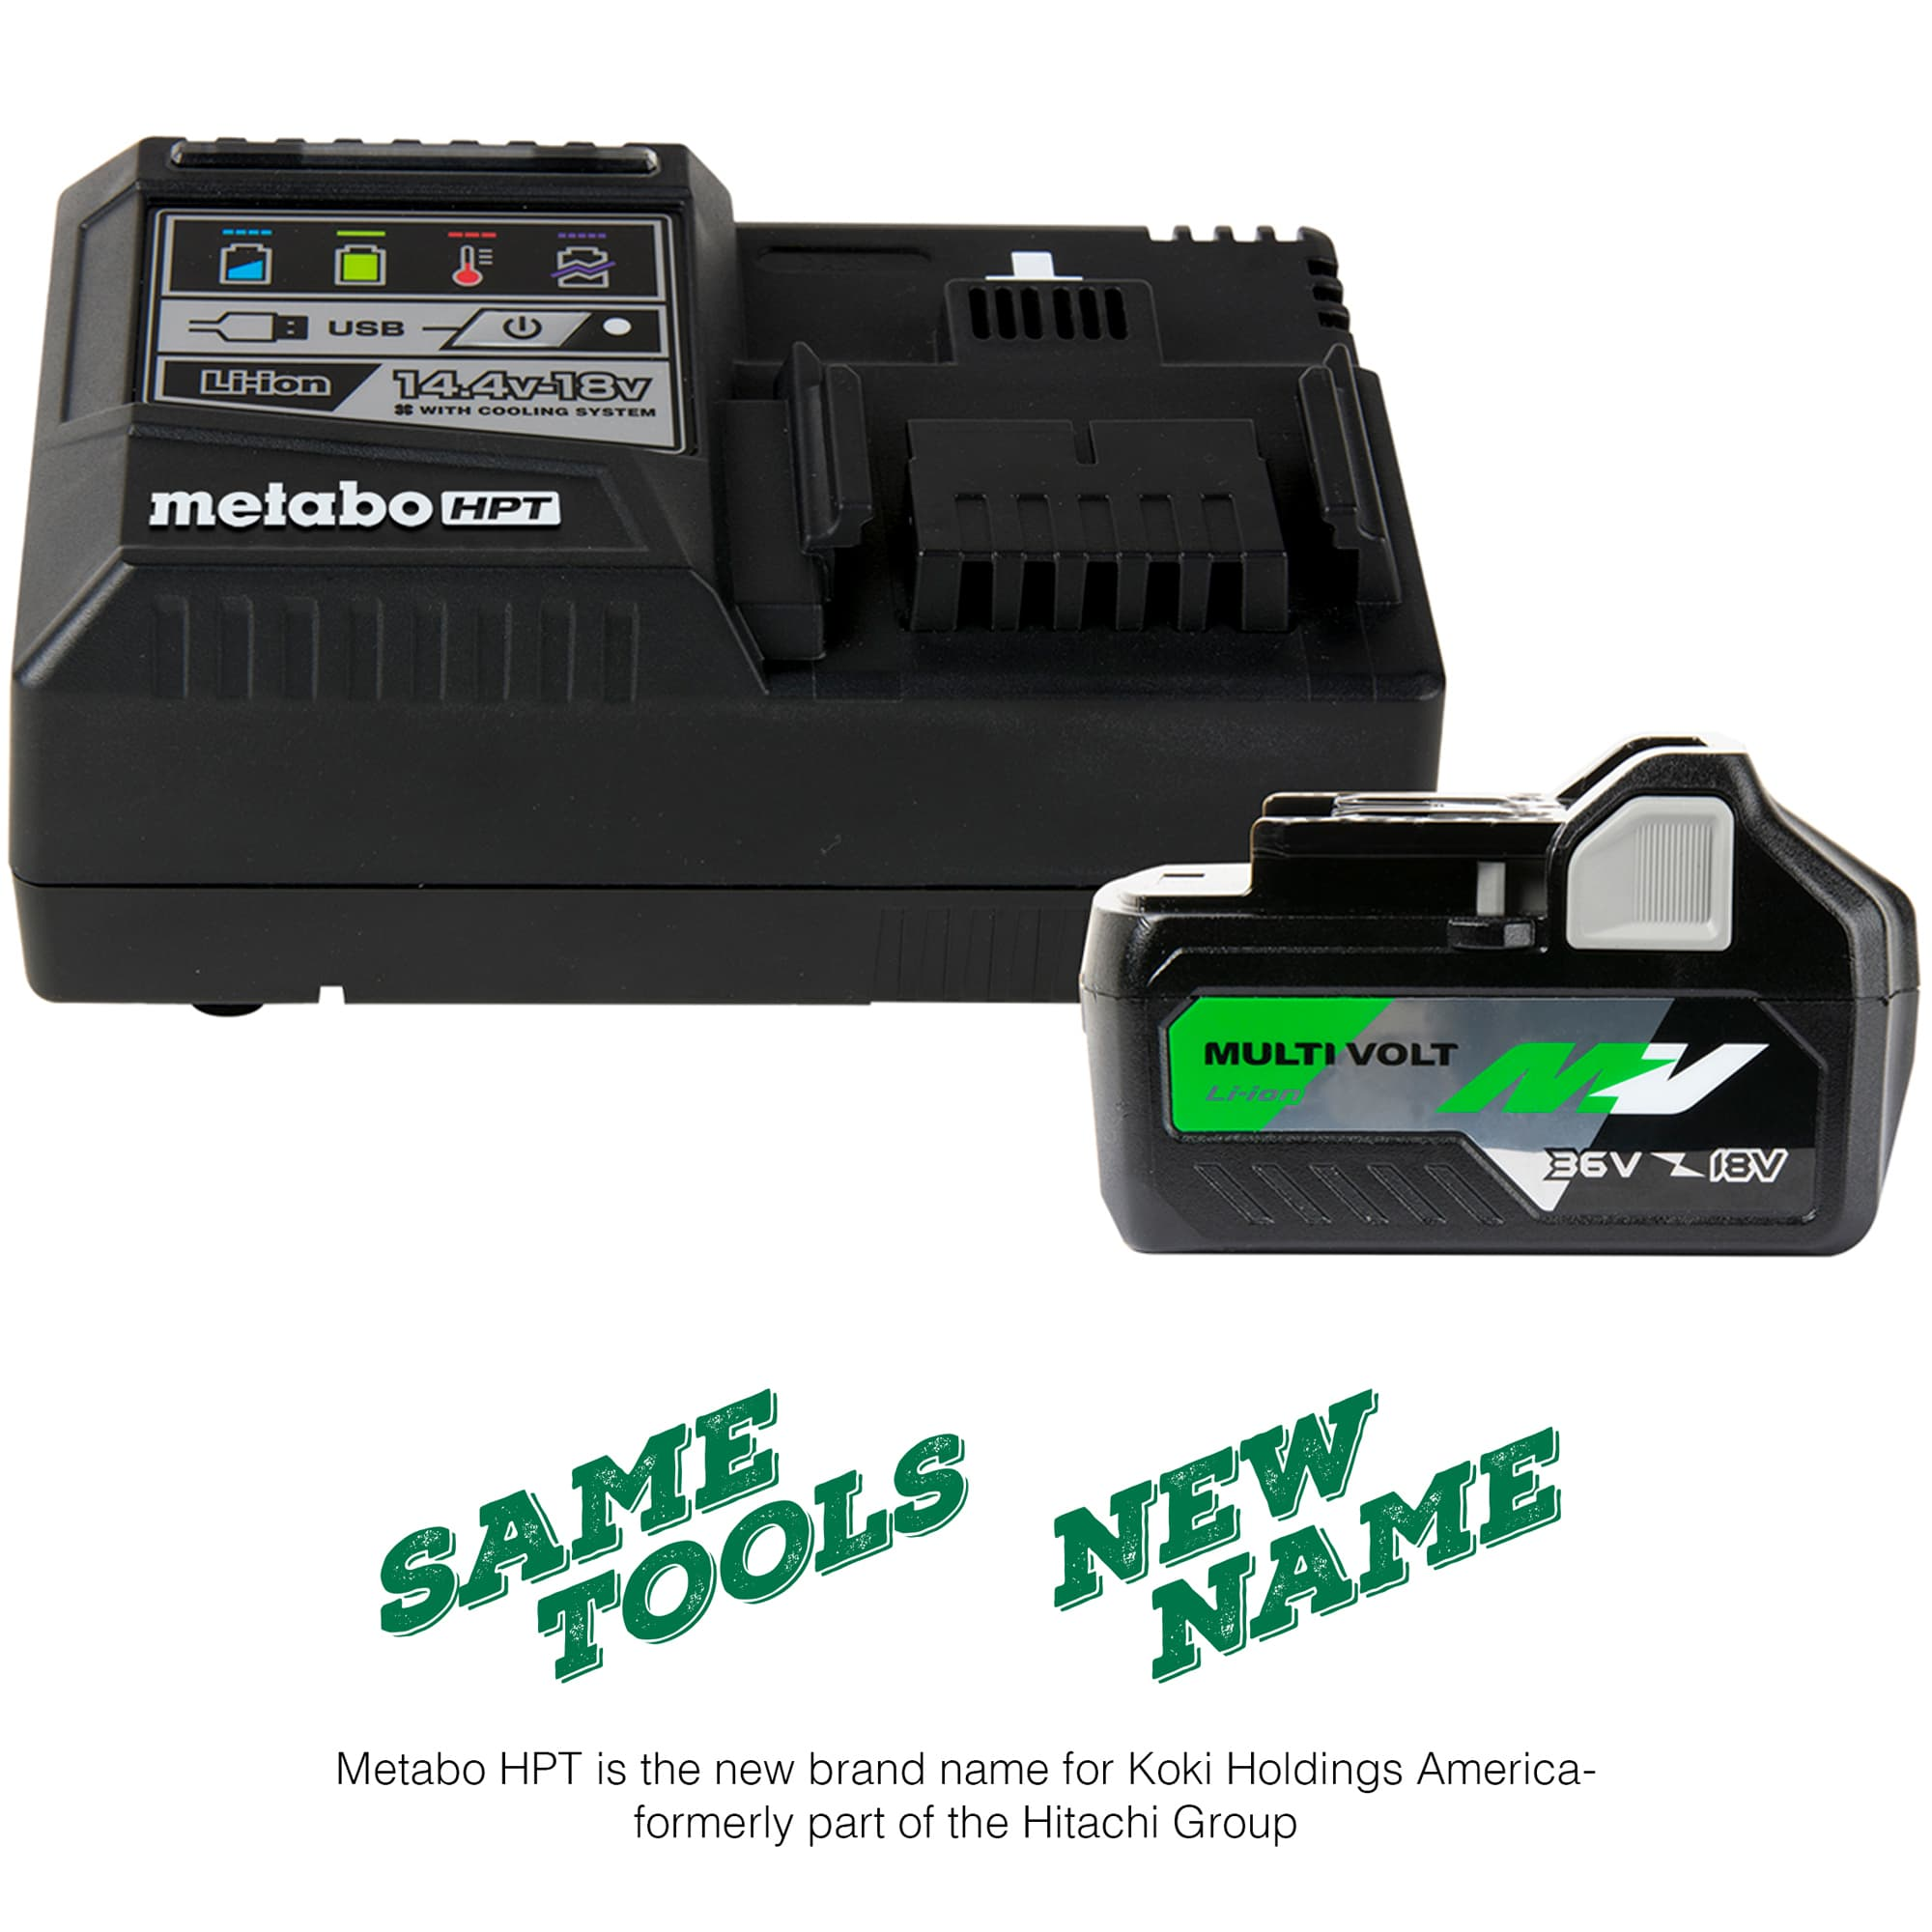 MultiVolt battery and charger